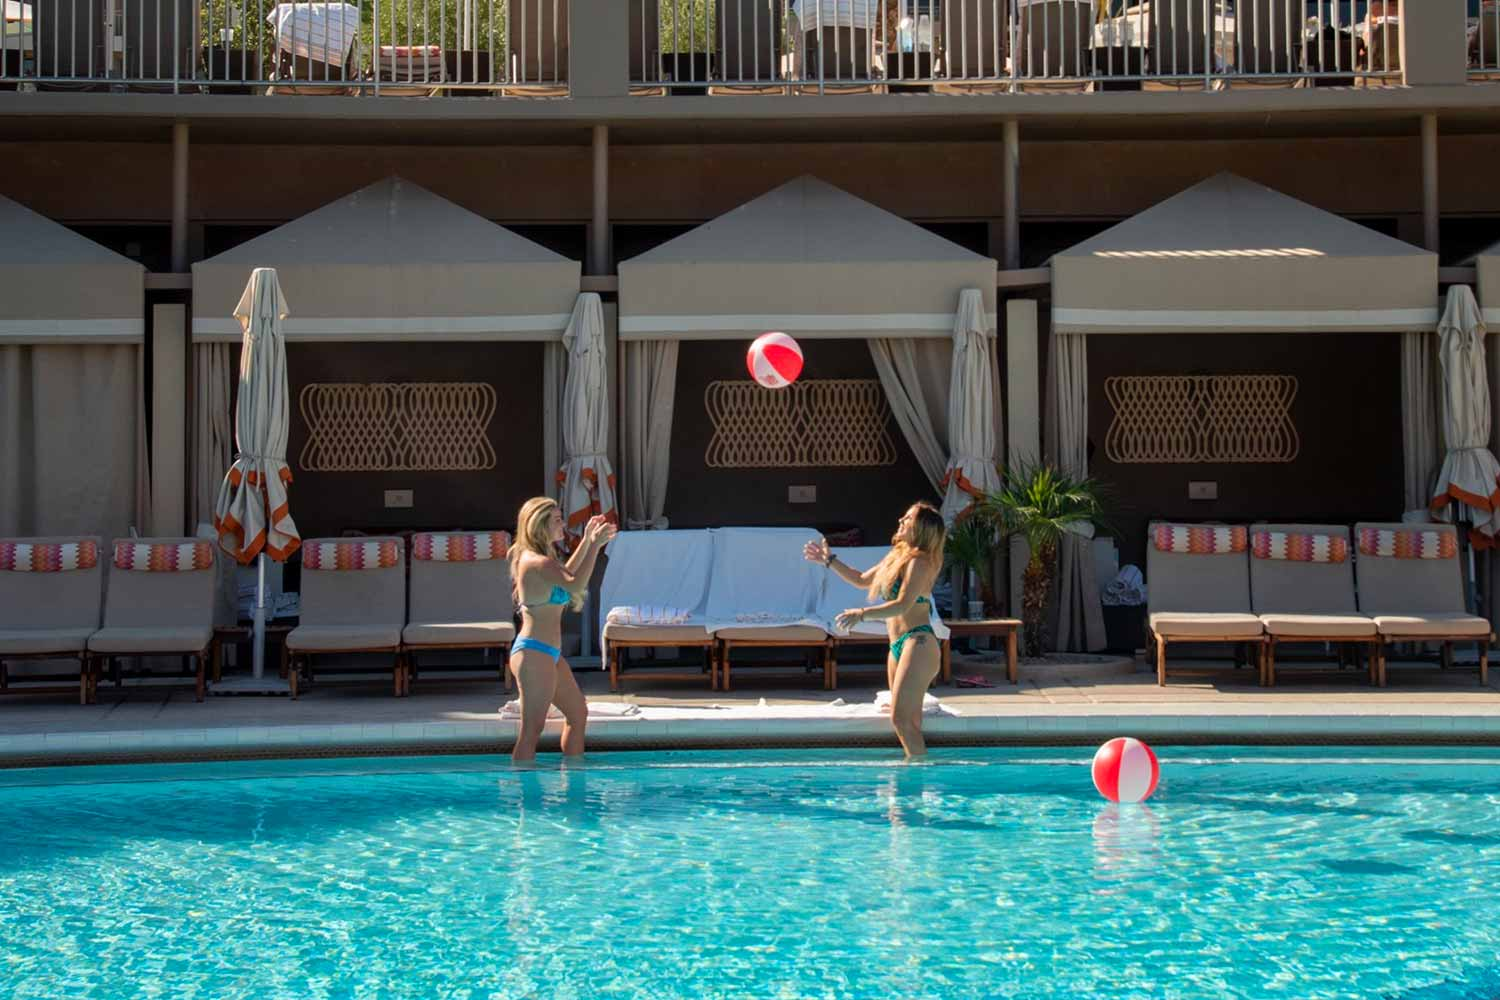 two women play with a blow up ball near pool's edge